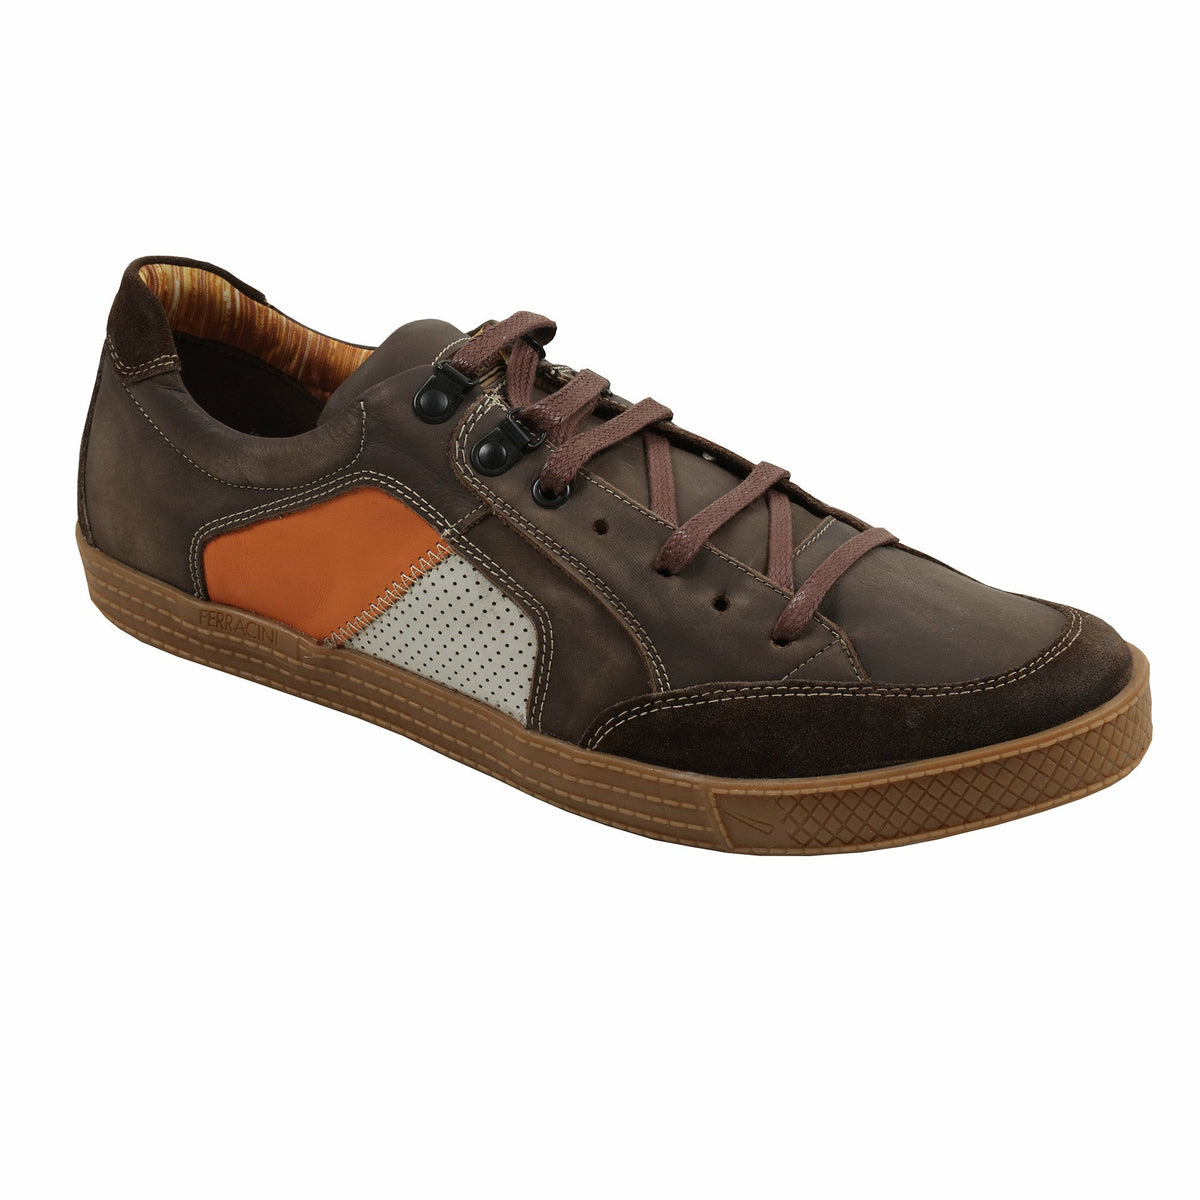 "Ferracini ""Uston"" Casual Shoes in Brown - Ron Bennett Big Men's Clothing"